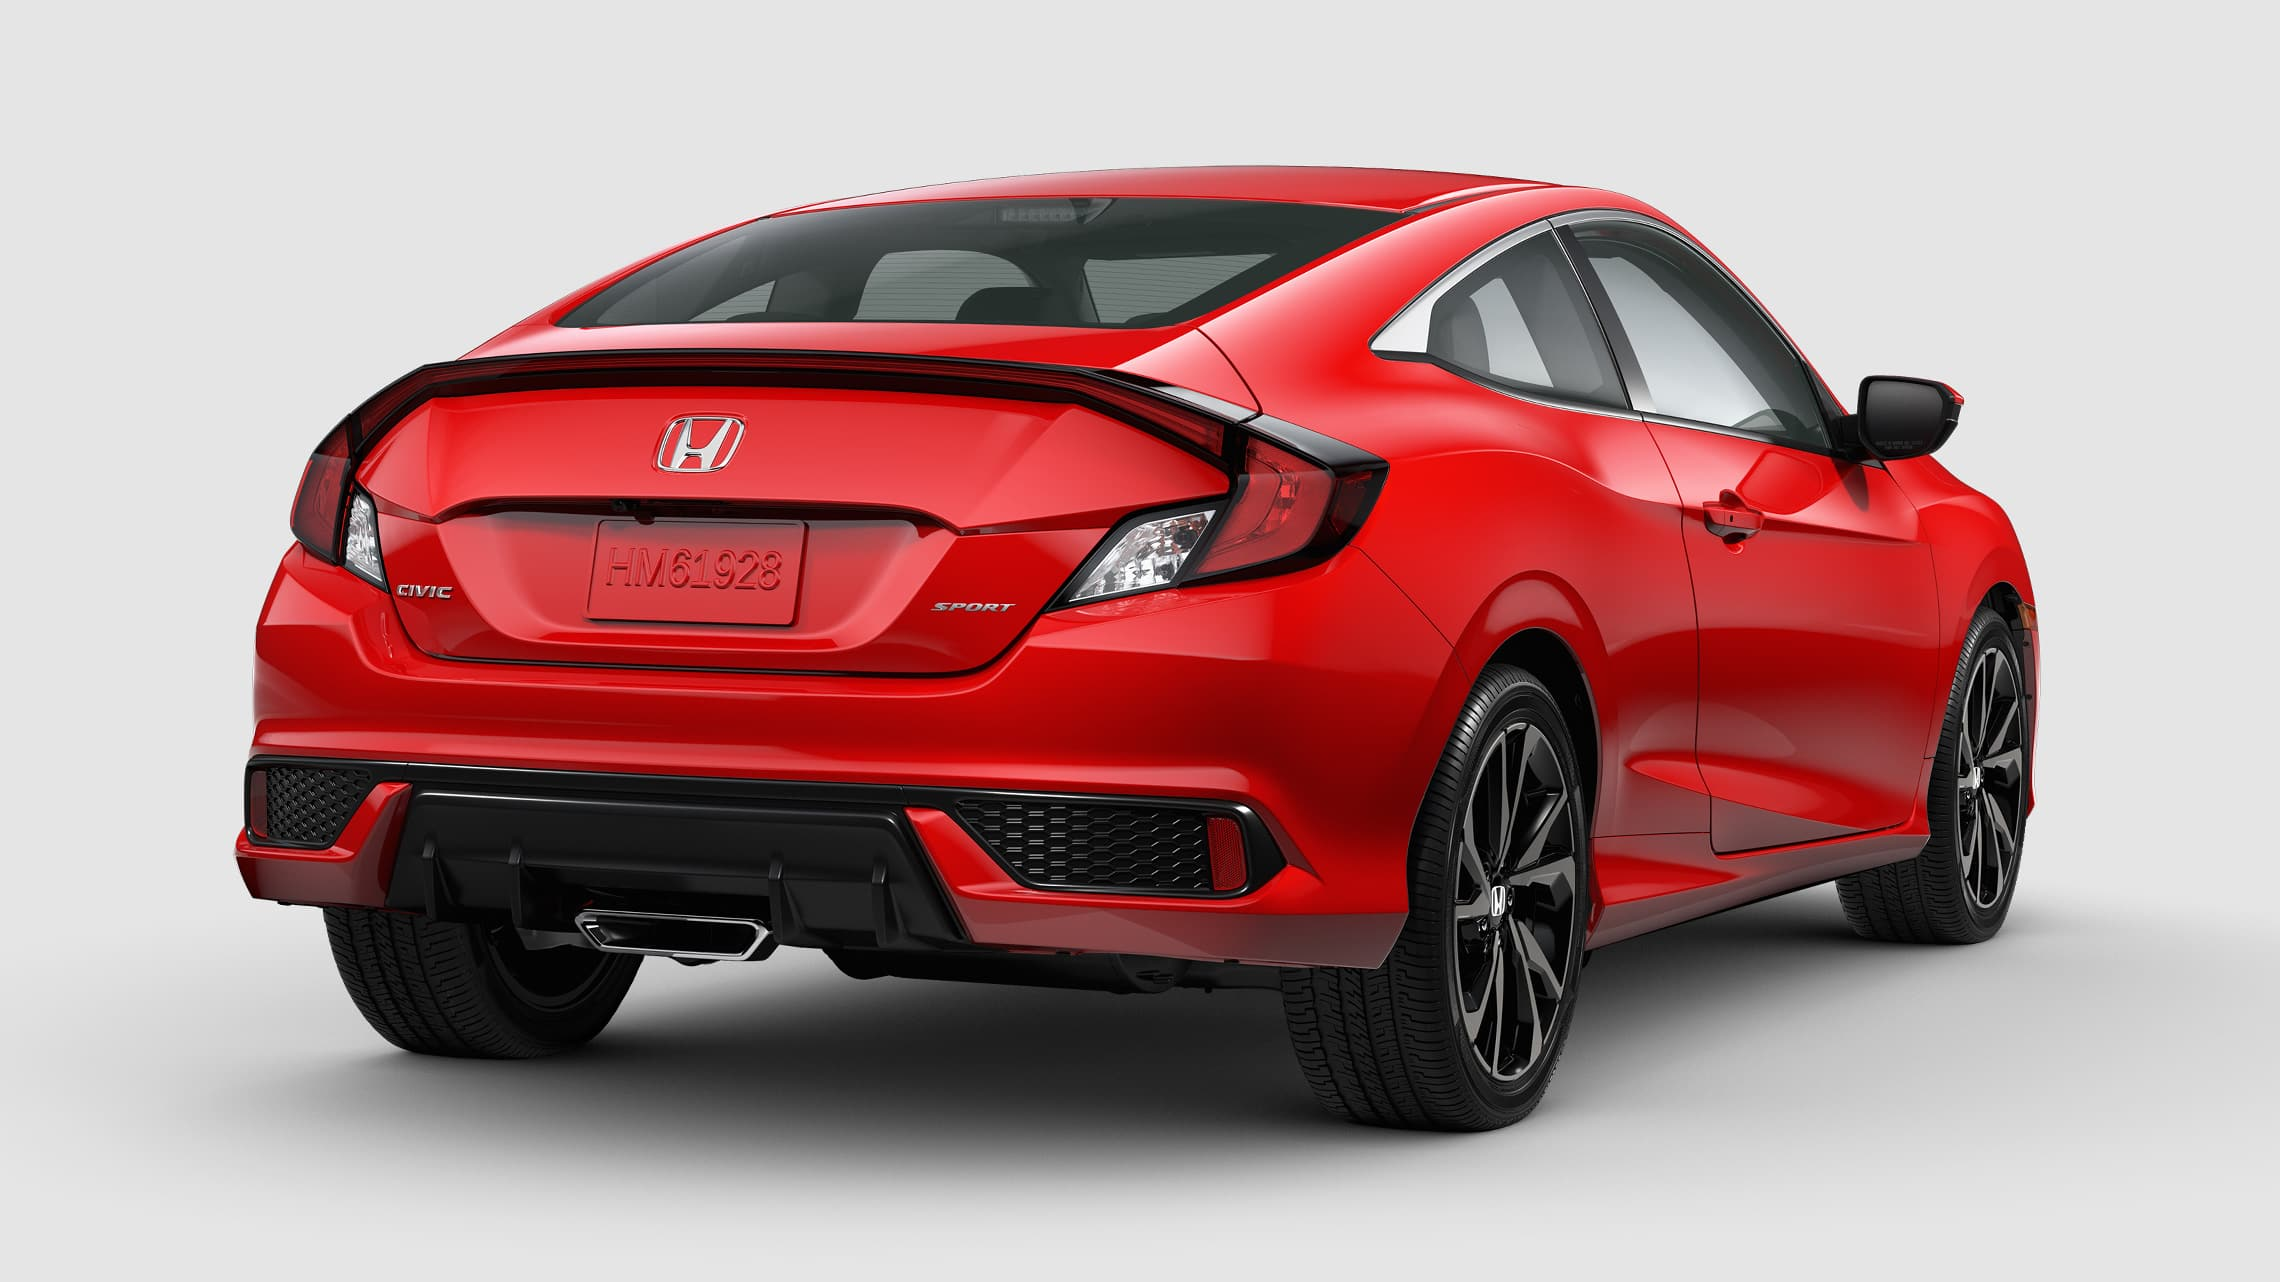 Vista trasera del Honda Civic Sport Coupé 2020 en Rallye Red.